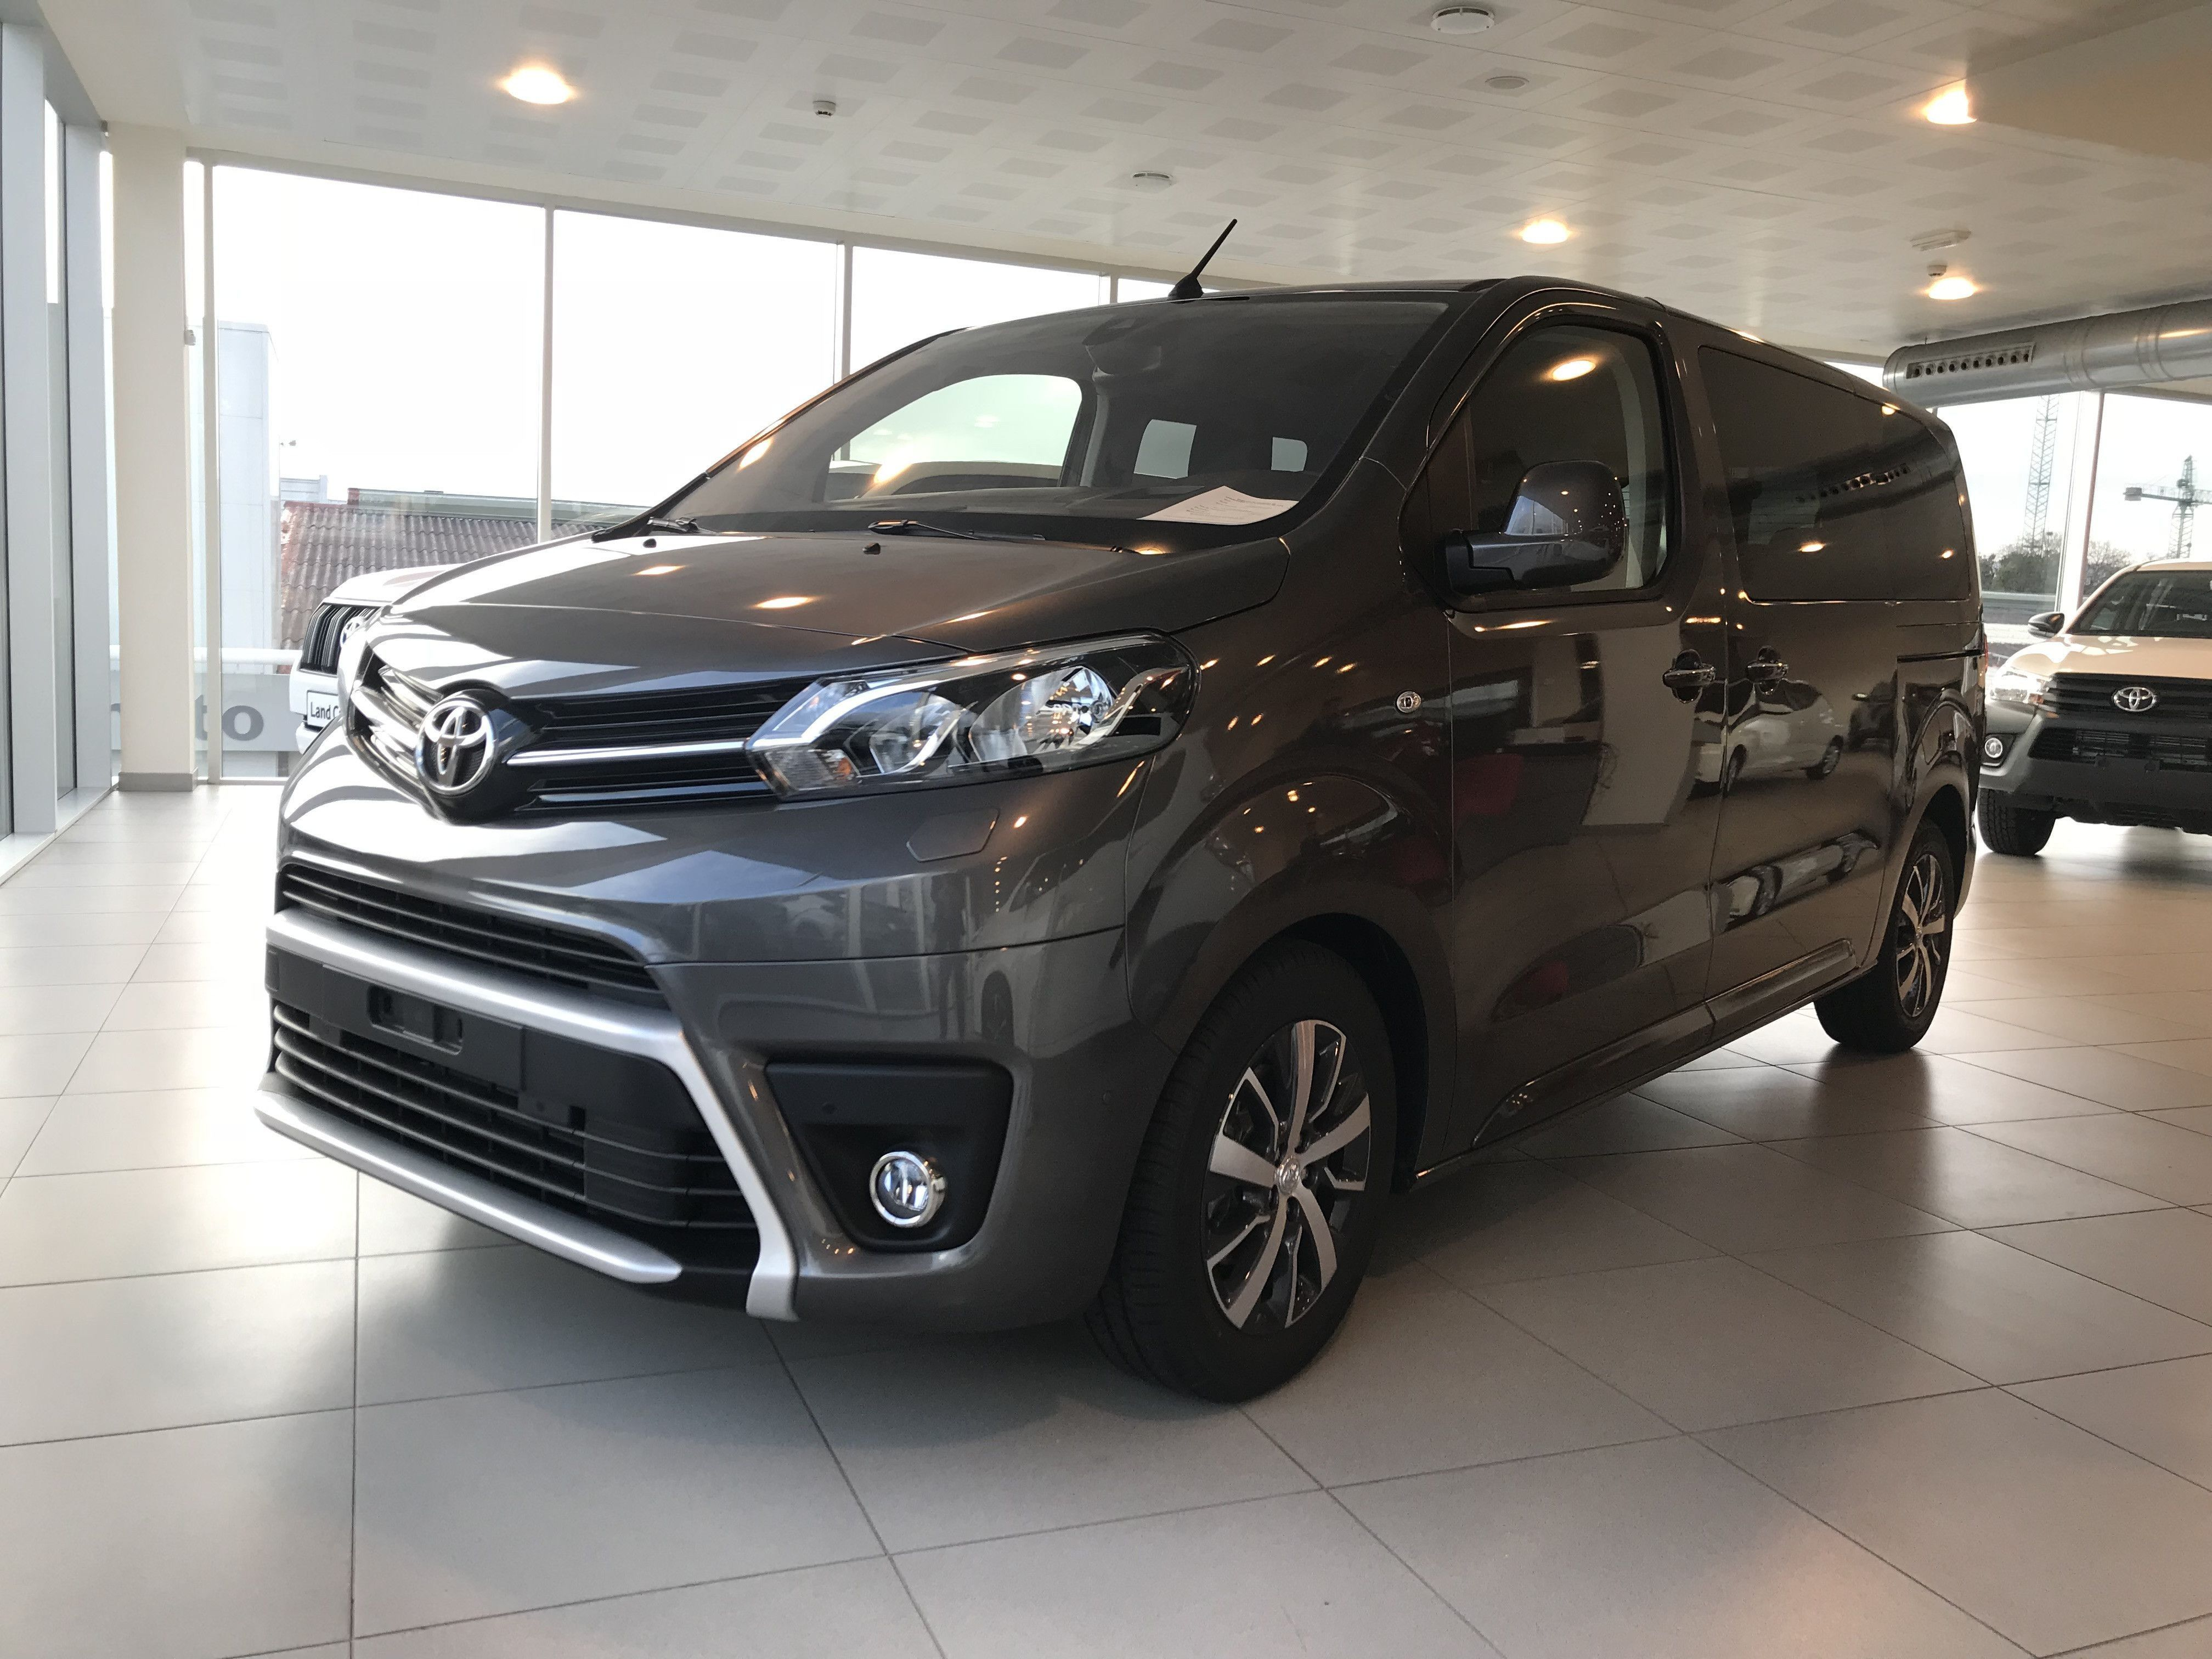 Toyota Avanza 2019 Picture Release Date And Review Car Wallpaper